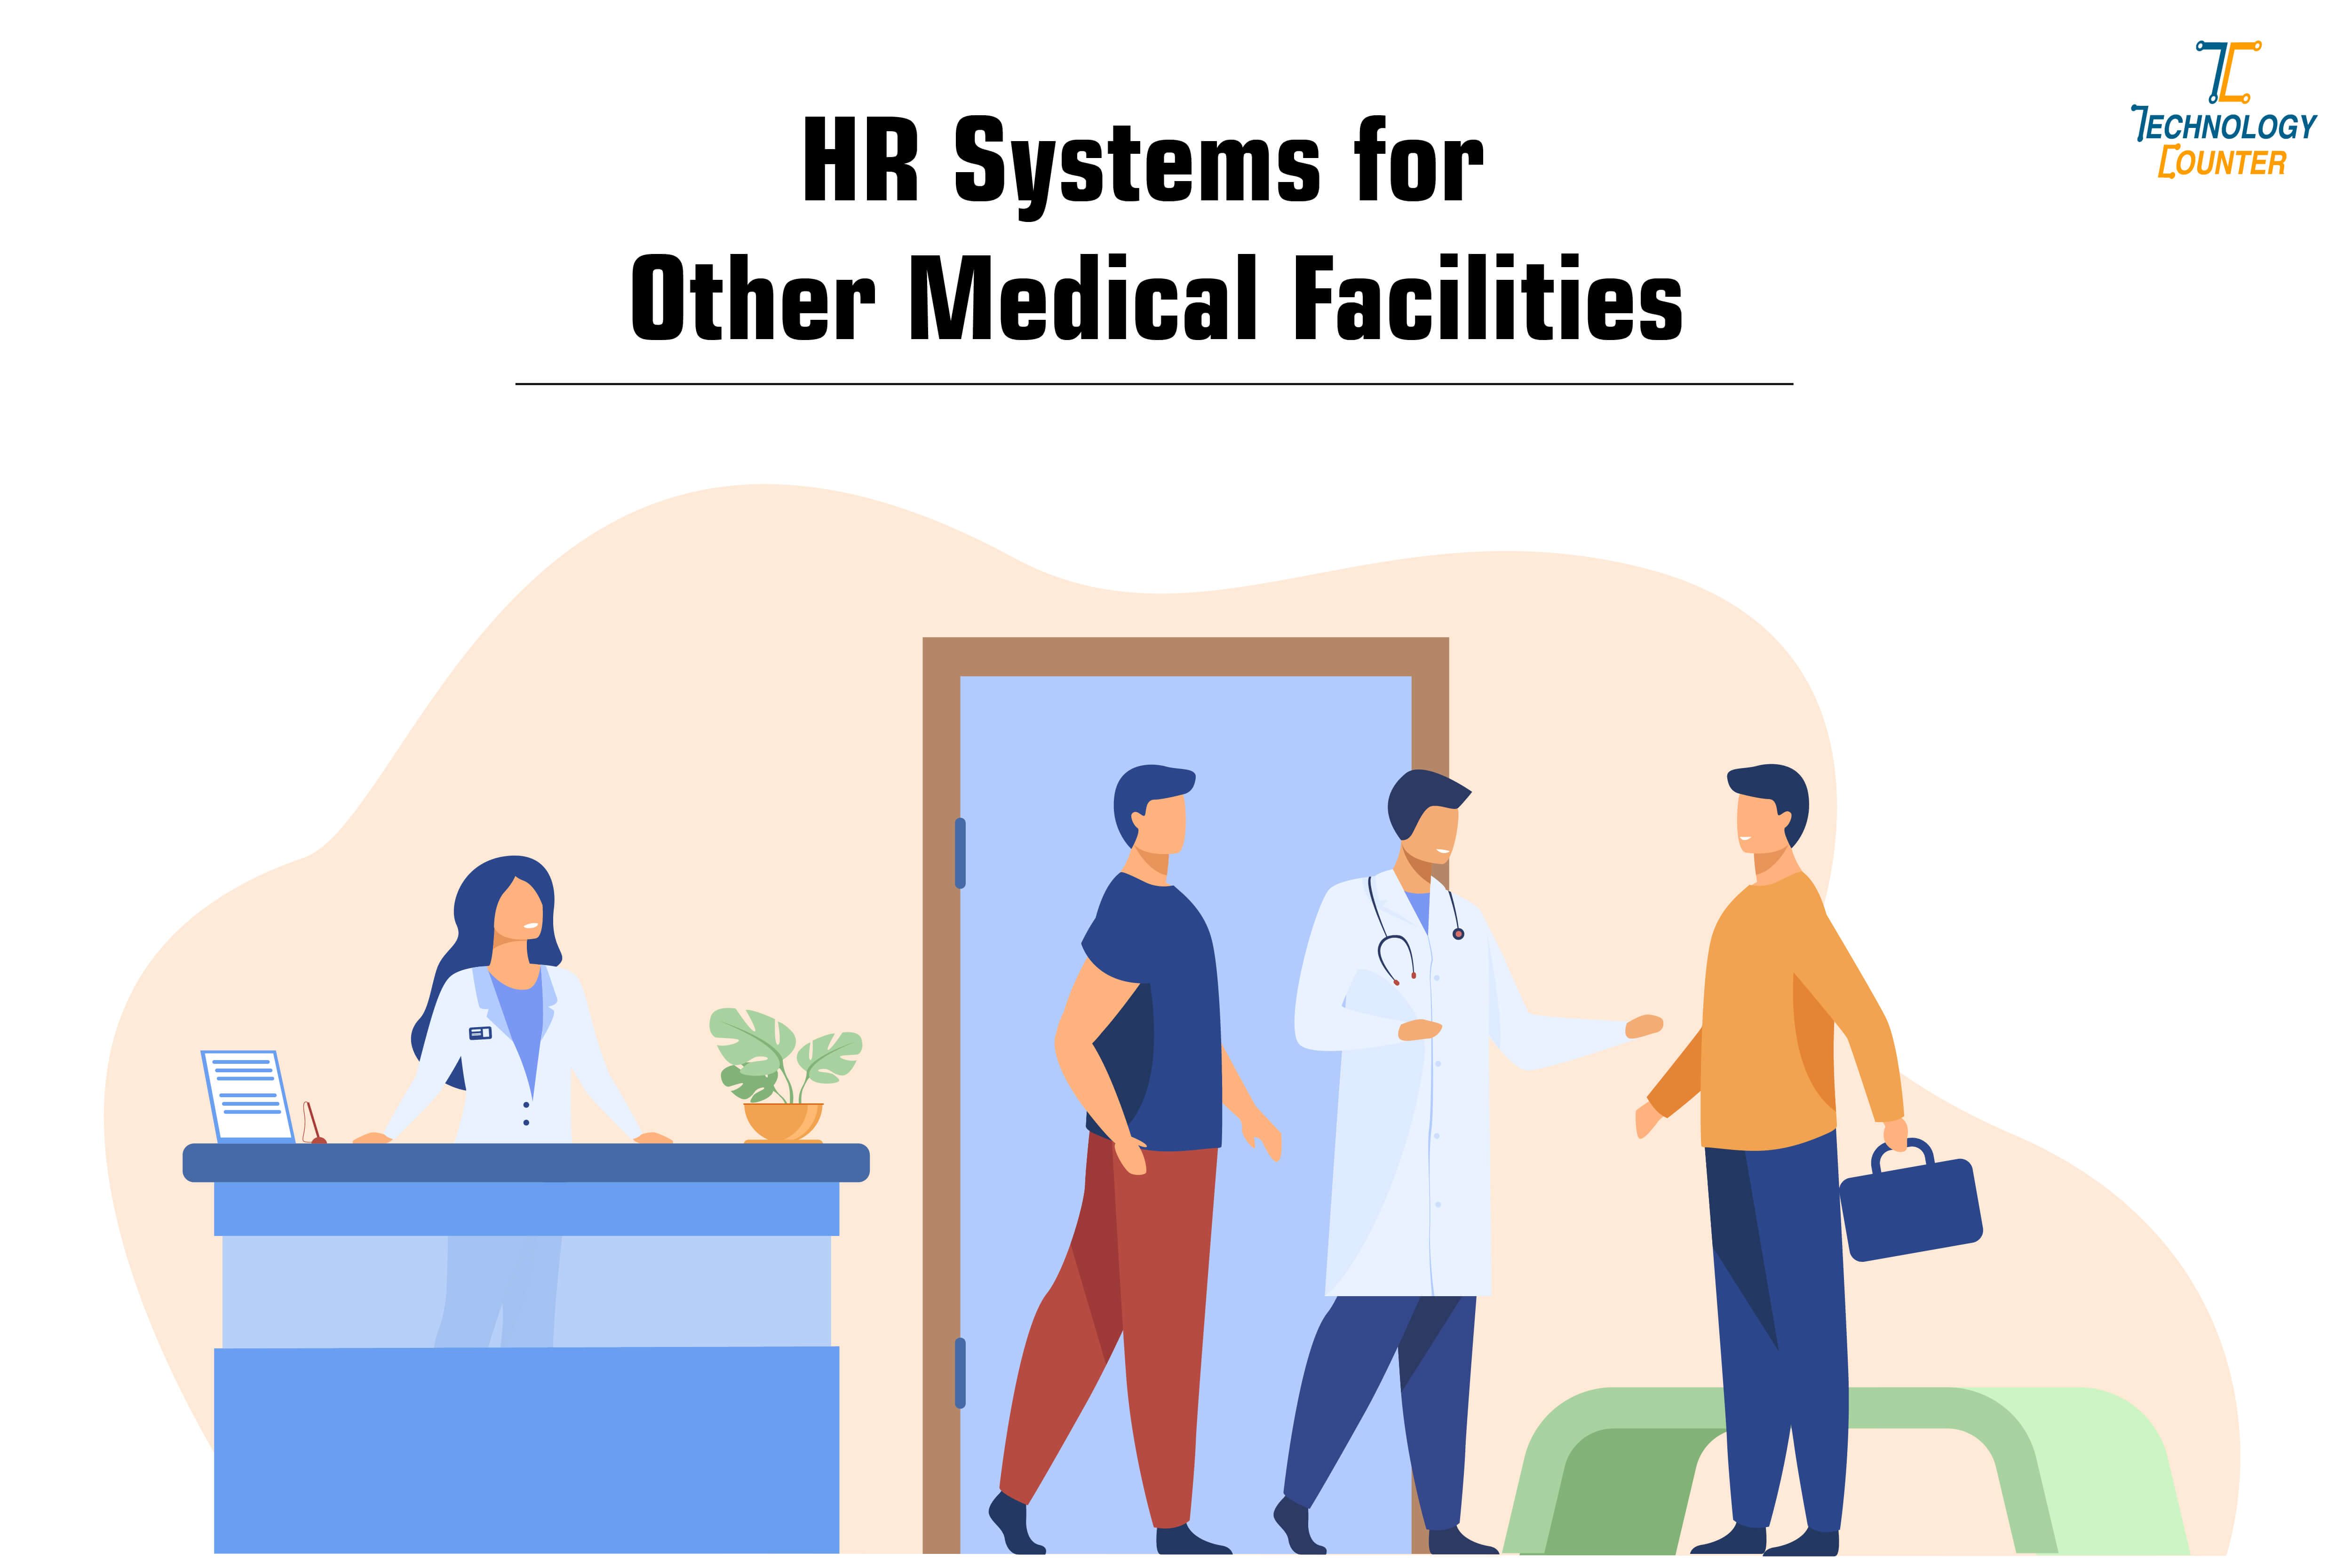 Software-based HR systems for other medical facilities